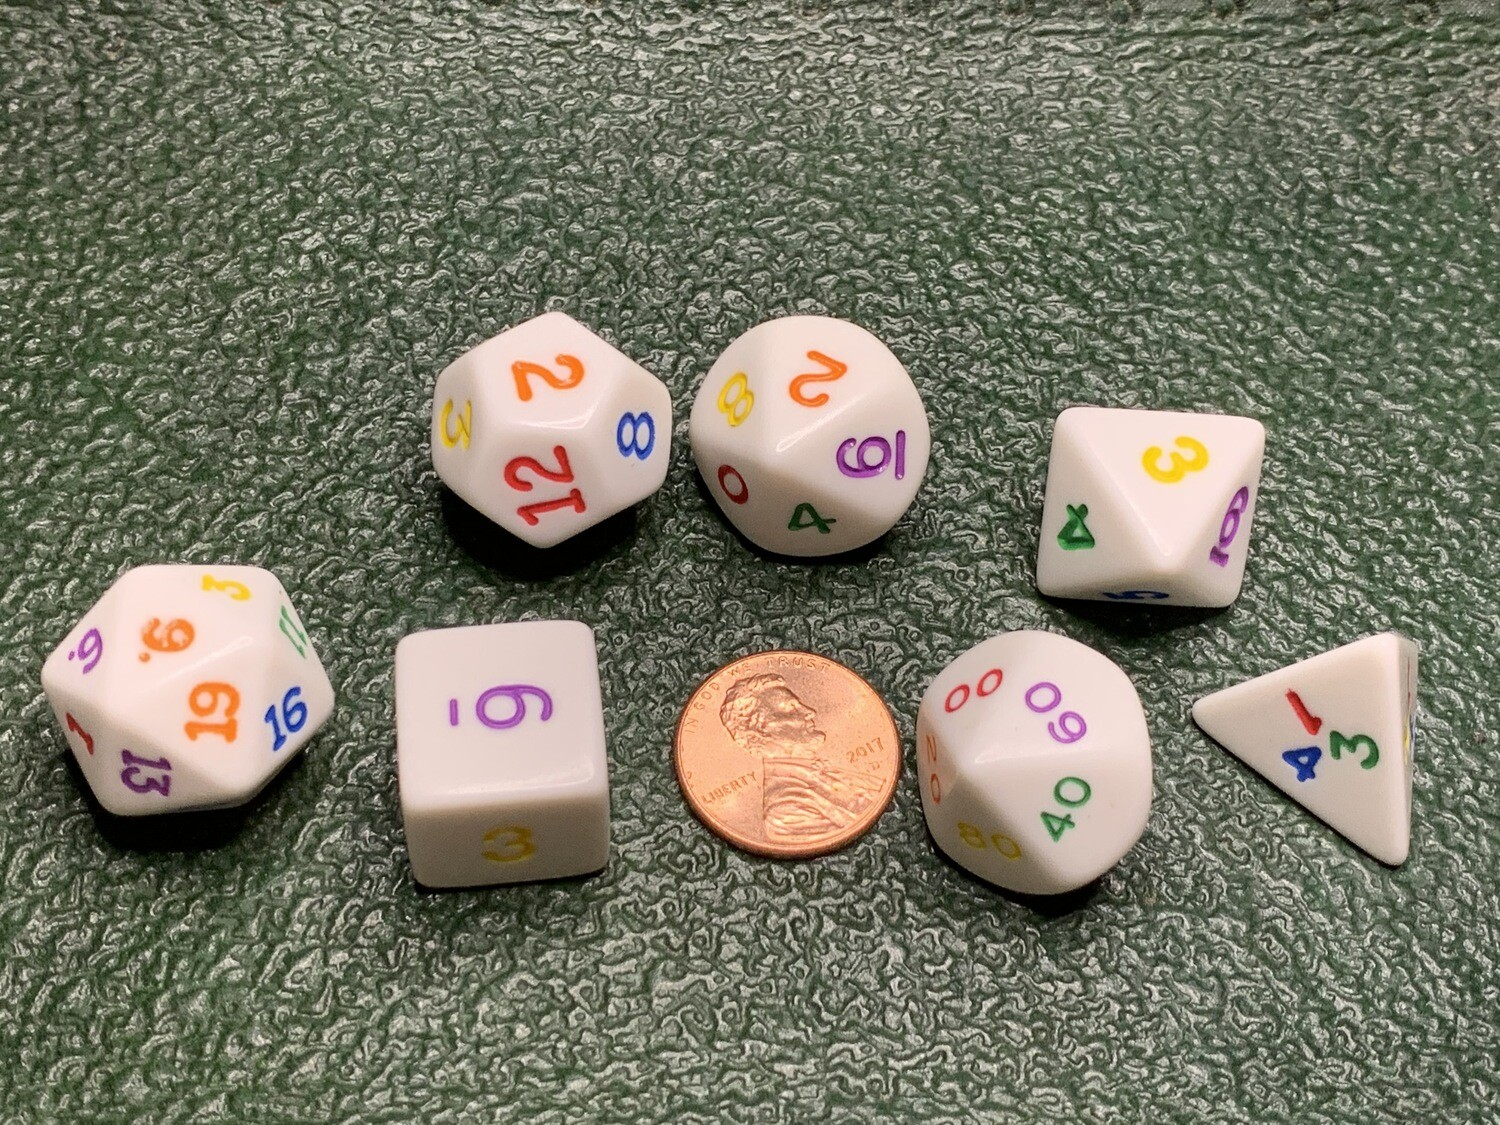 Rainbow 7 Dice Polyhedral Set RPG Tabletop Gaming Board Card Roleplay Roll